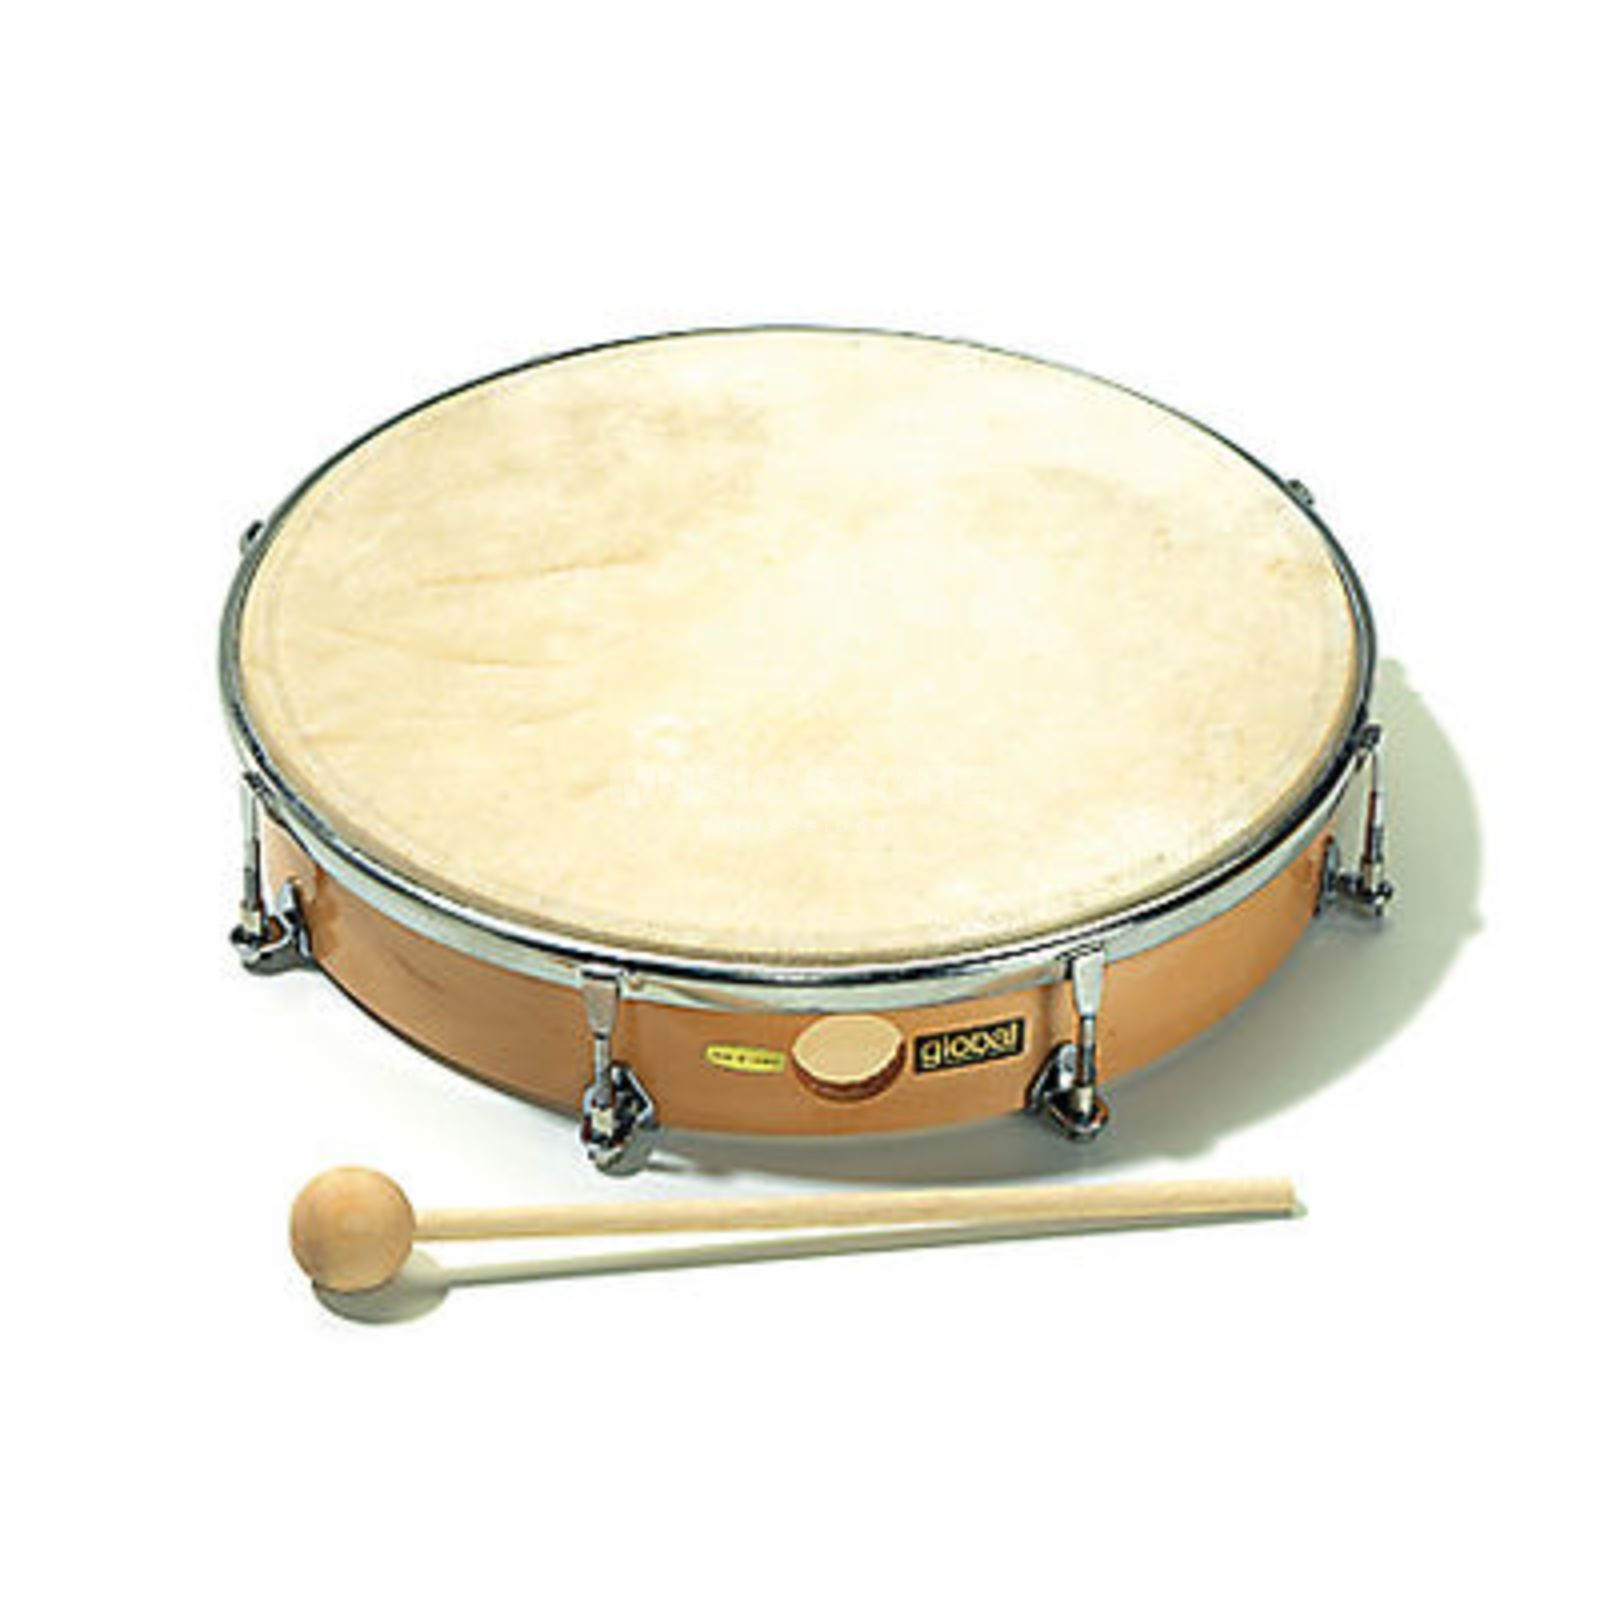 "Sonor Hand Drum CG THD 10 N, 10"", Natural Head Produktbillede"